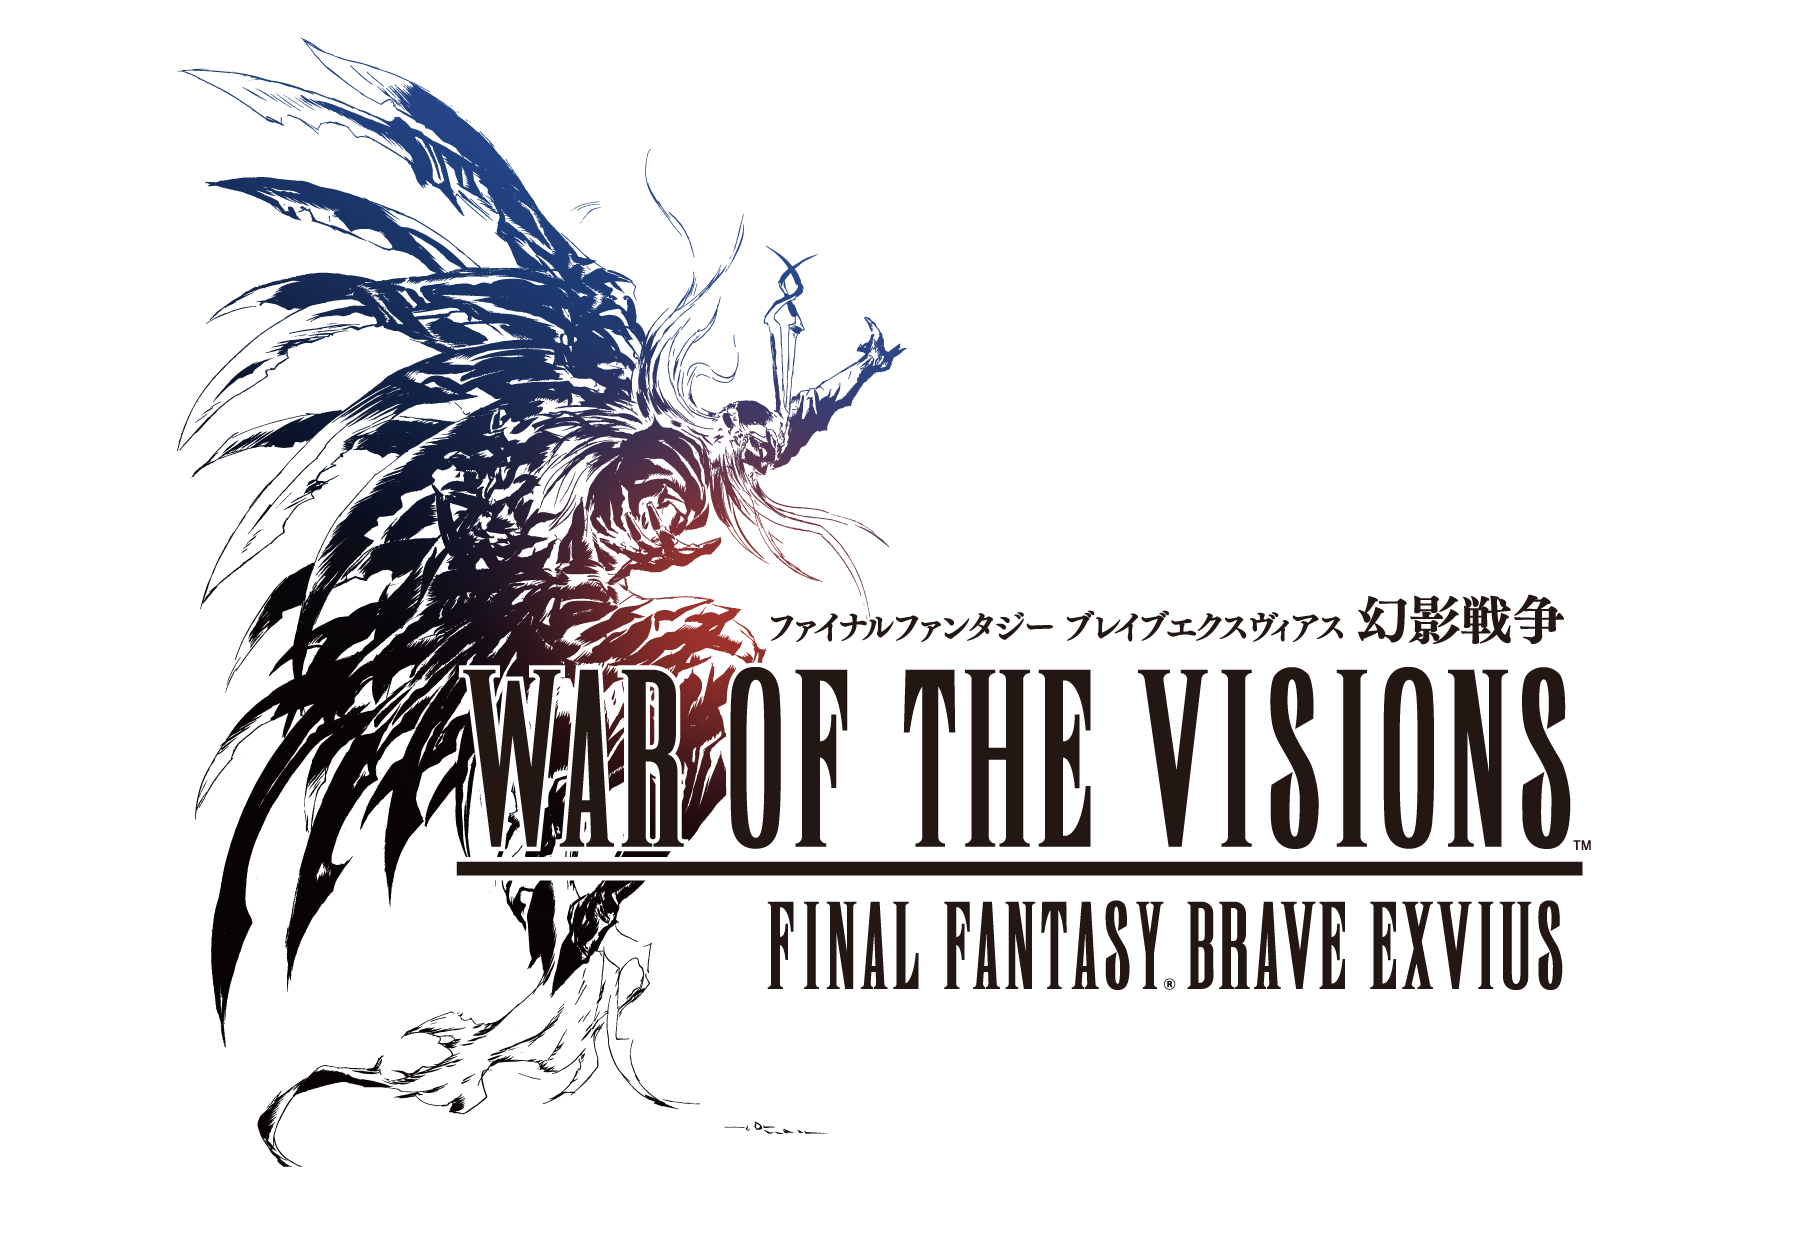 『WAR OF THE VISIONS』(ファイナルファンタジー ブレイブエクスヴィアス 幻影戦争)ロゴ